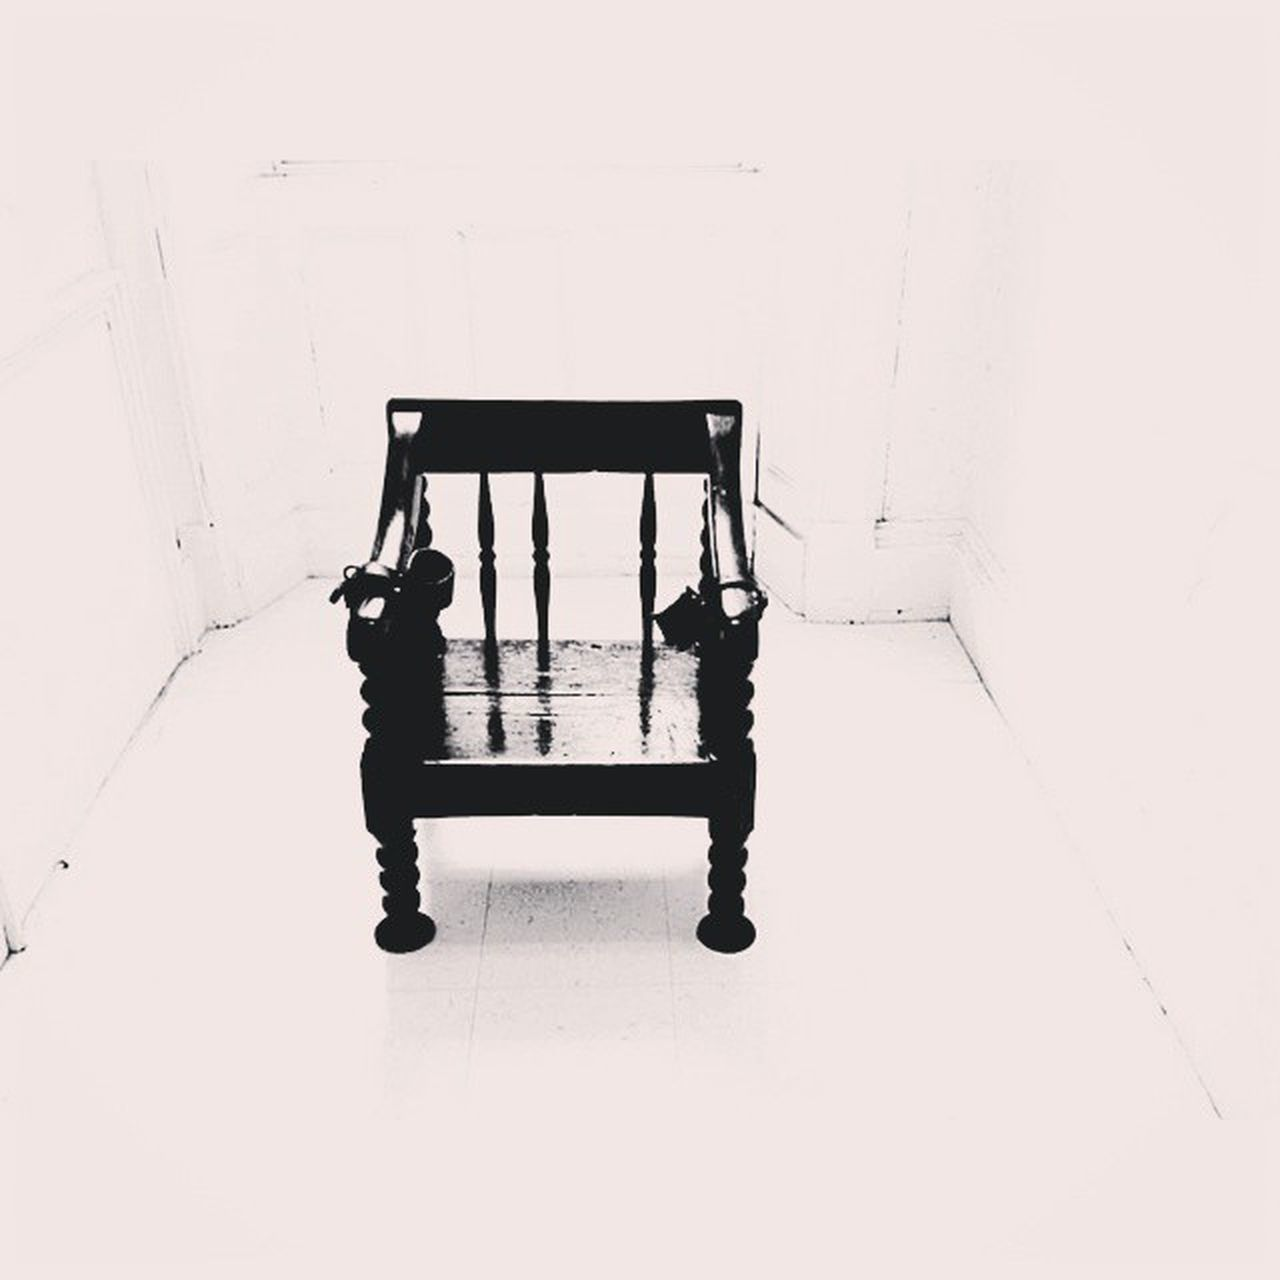 Restraint Isolation UticaAsylum Understanding Mental Illness Historical Place Empty Chair Have A Seat! Loneliness Depression